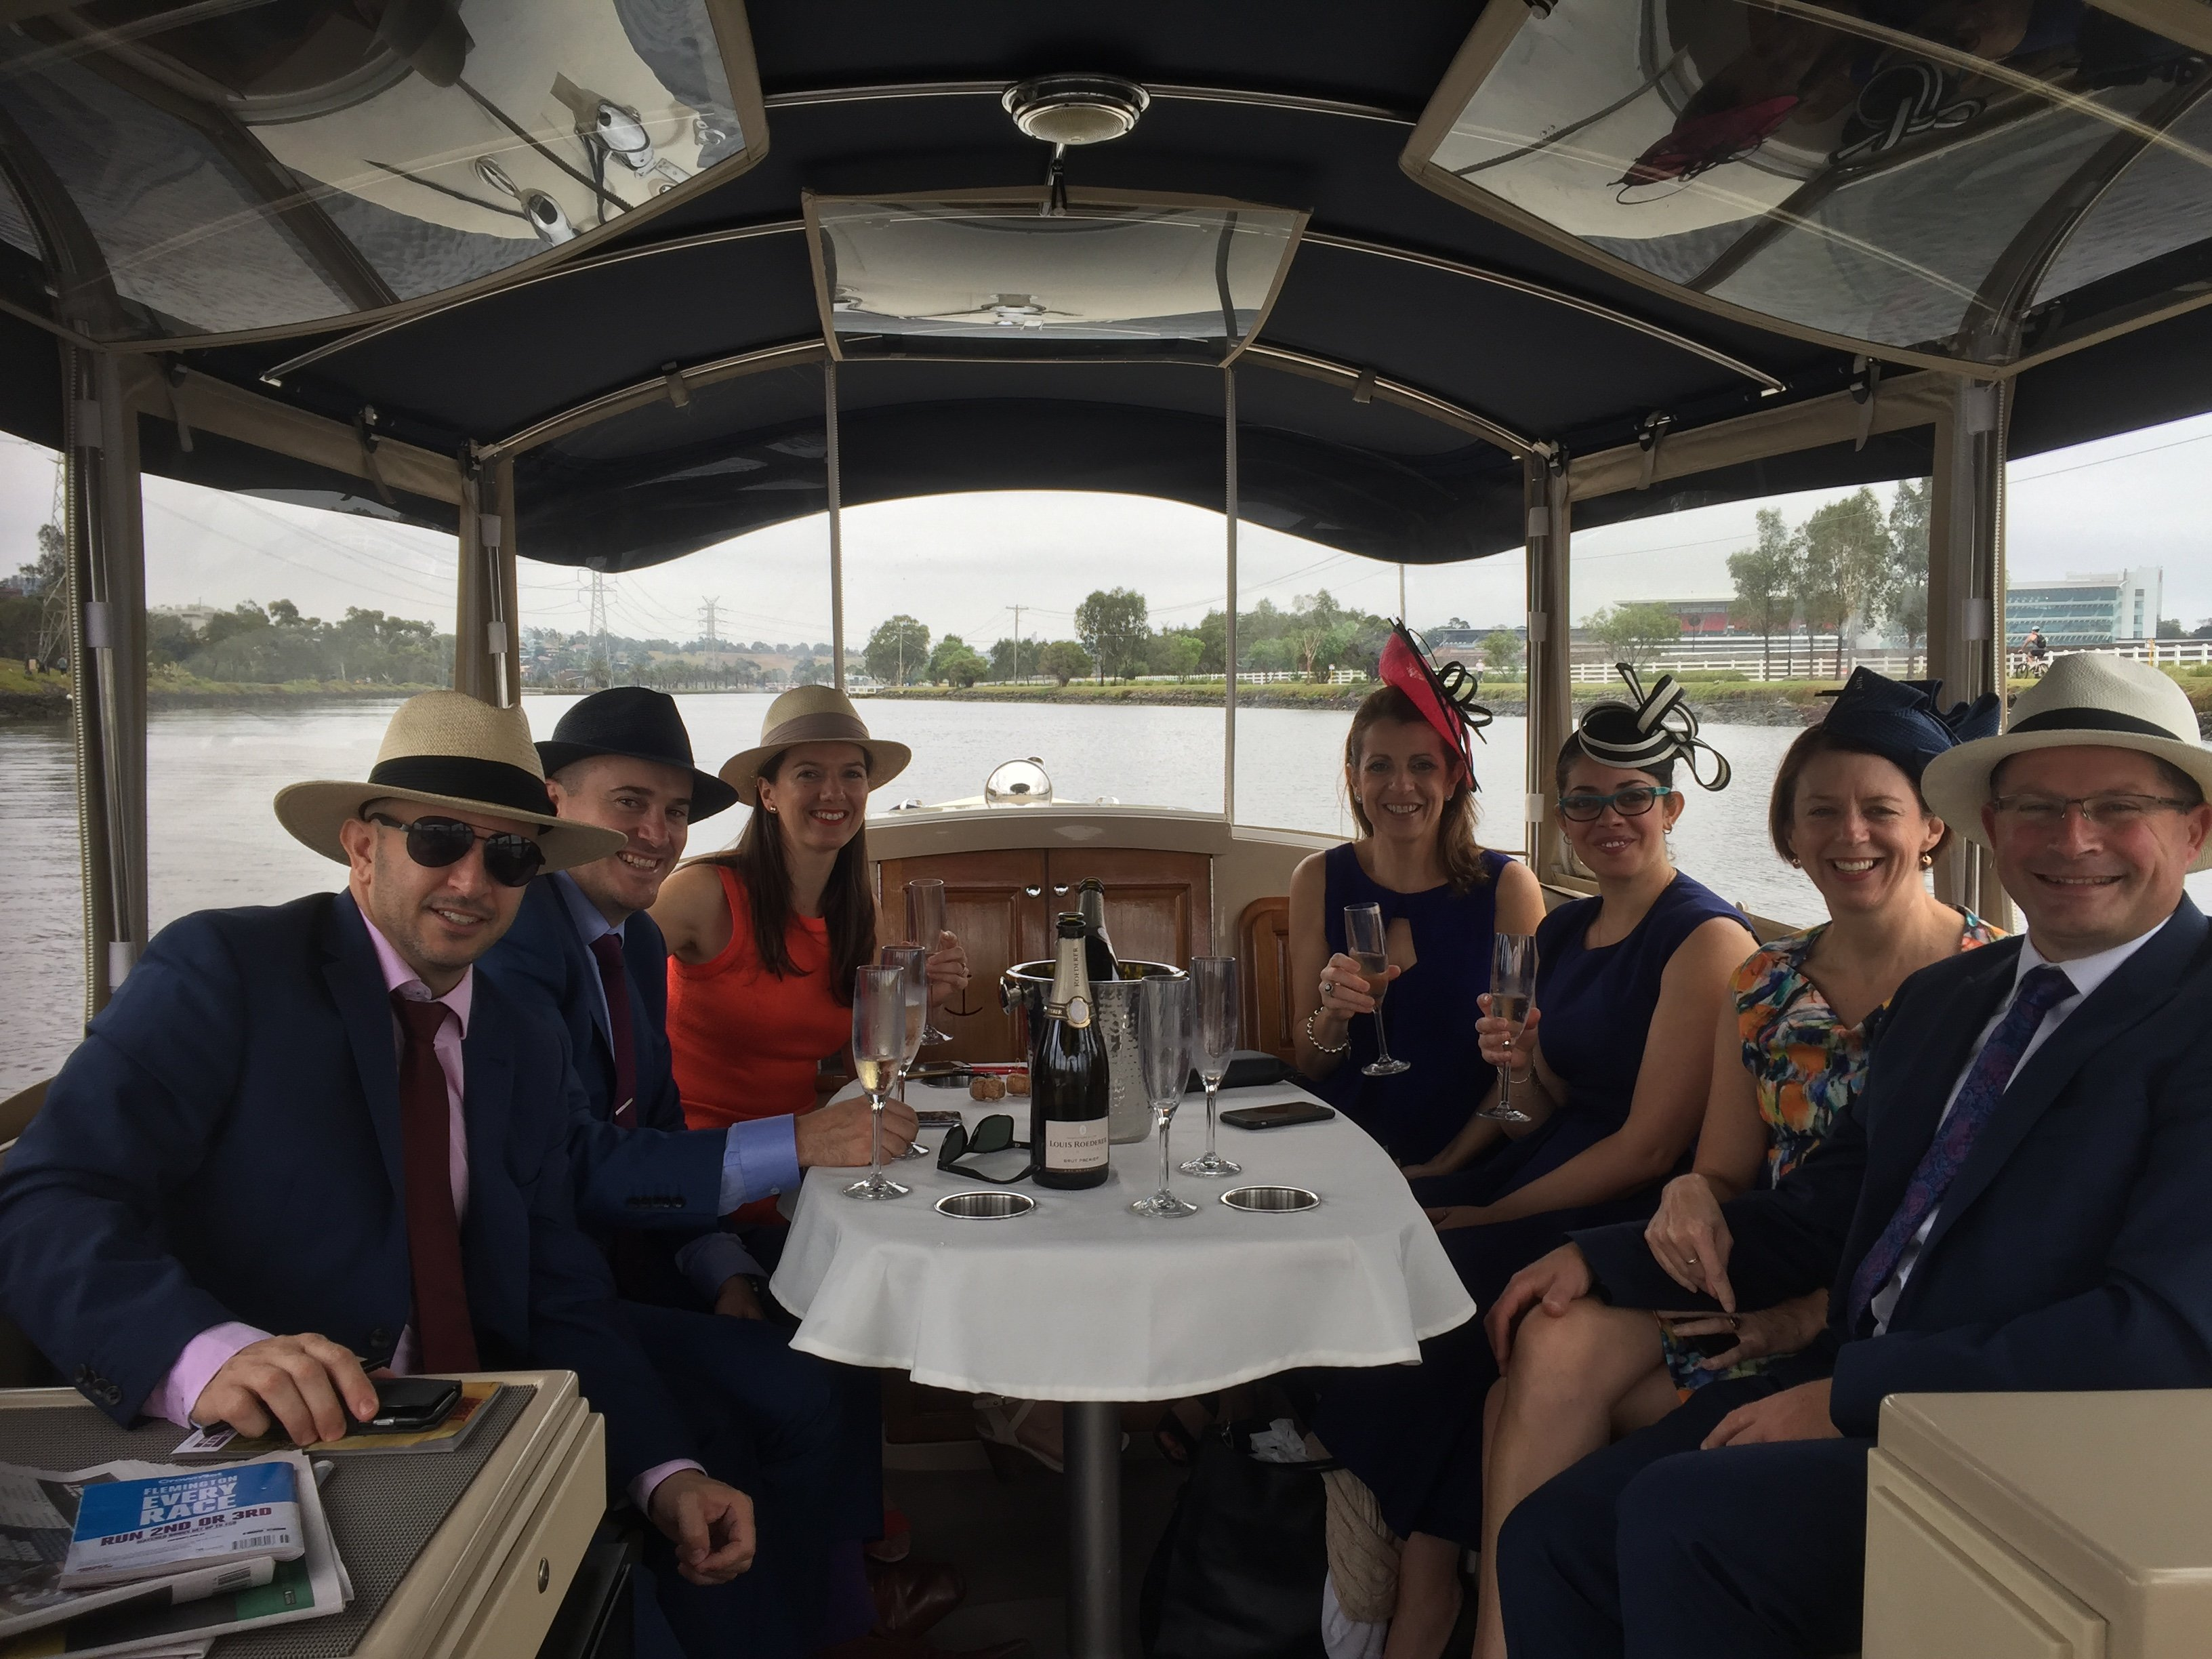 enjoy stylish travel to Flemington, for the Melbourne Cup this year